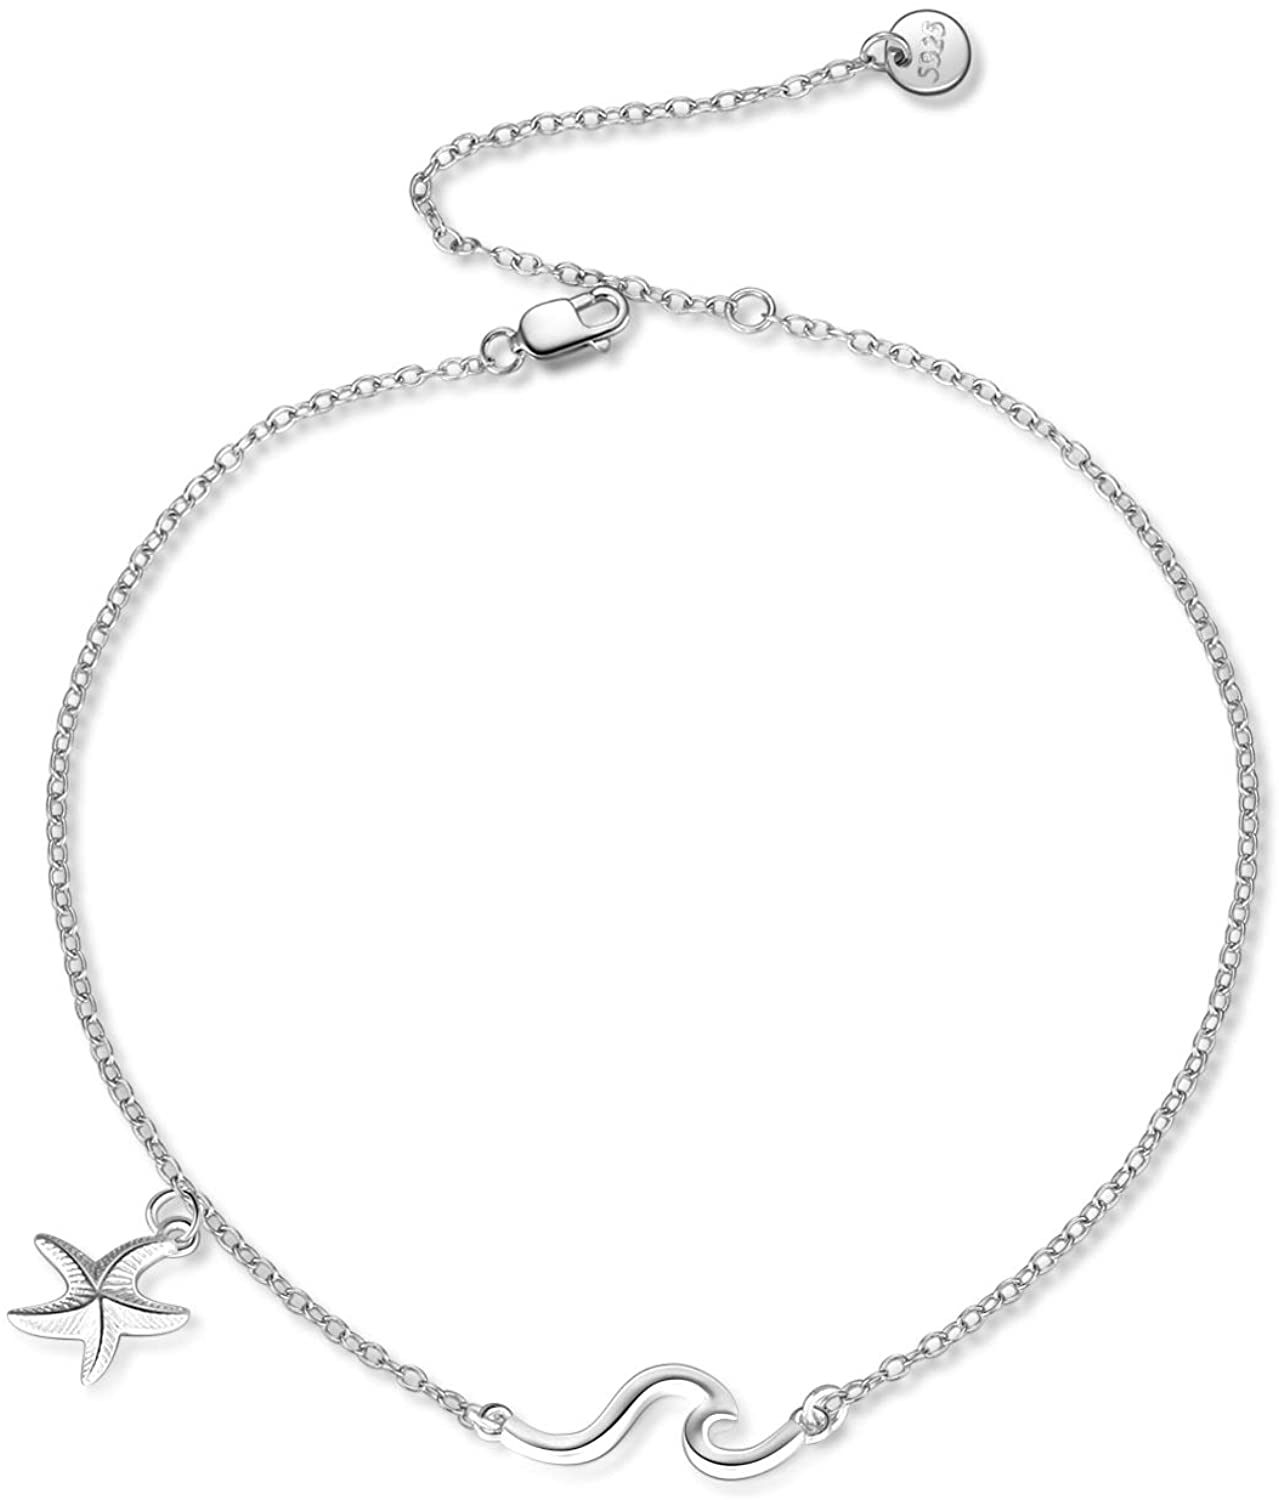 POPKIMI S925 Sterling Silver Anklets for Women Girls Jewelry Birthday Gifts